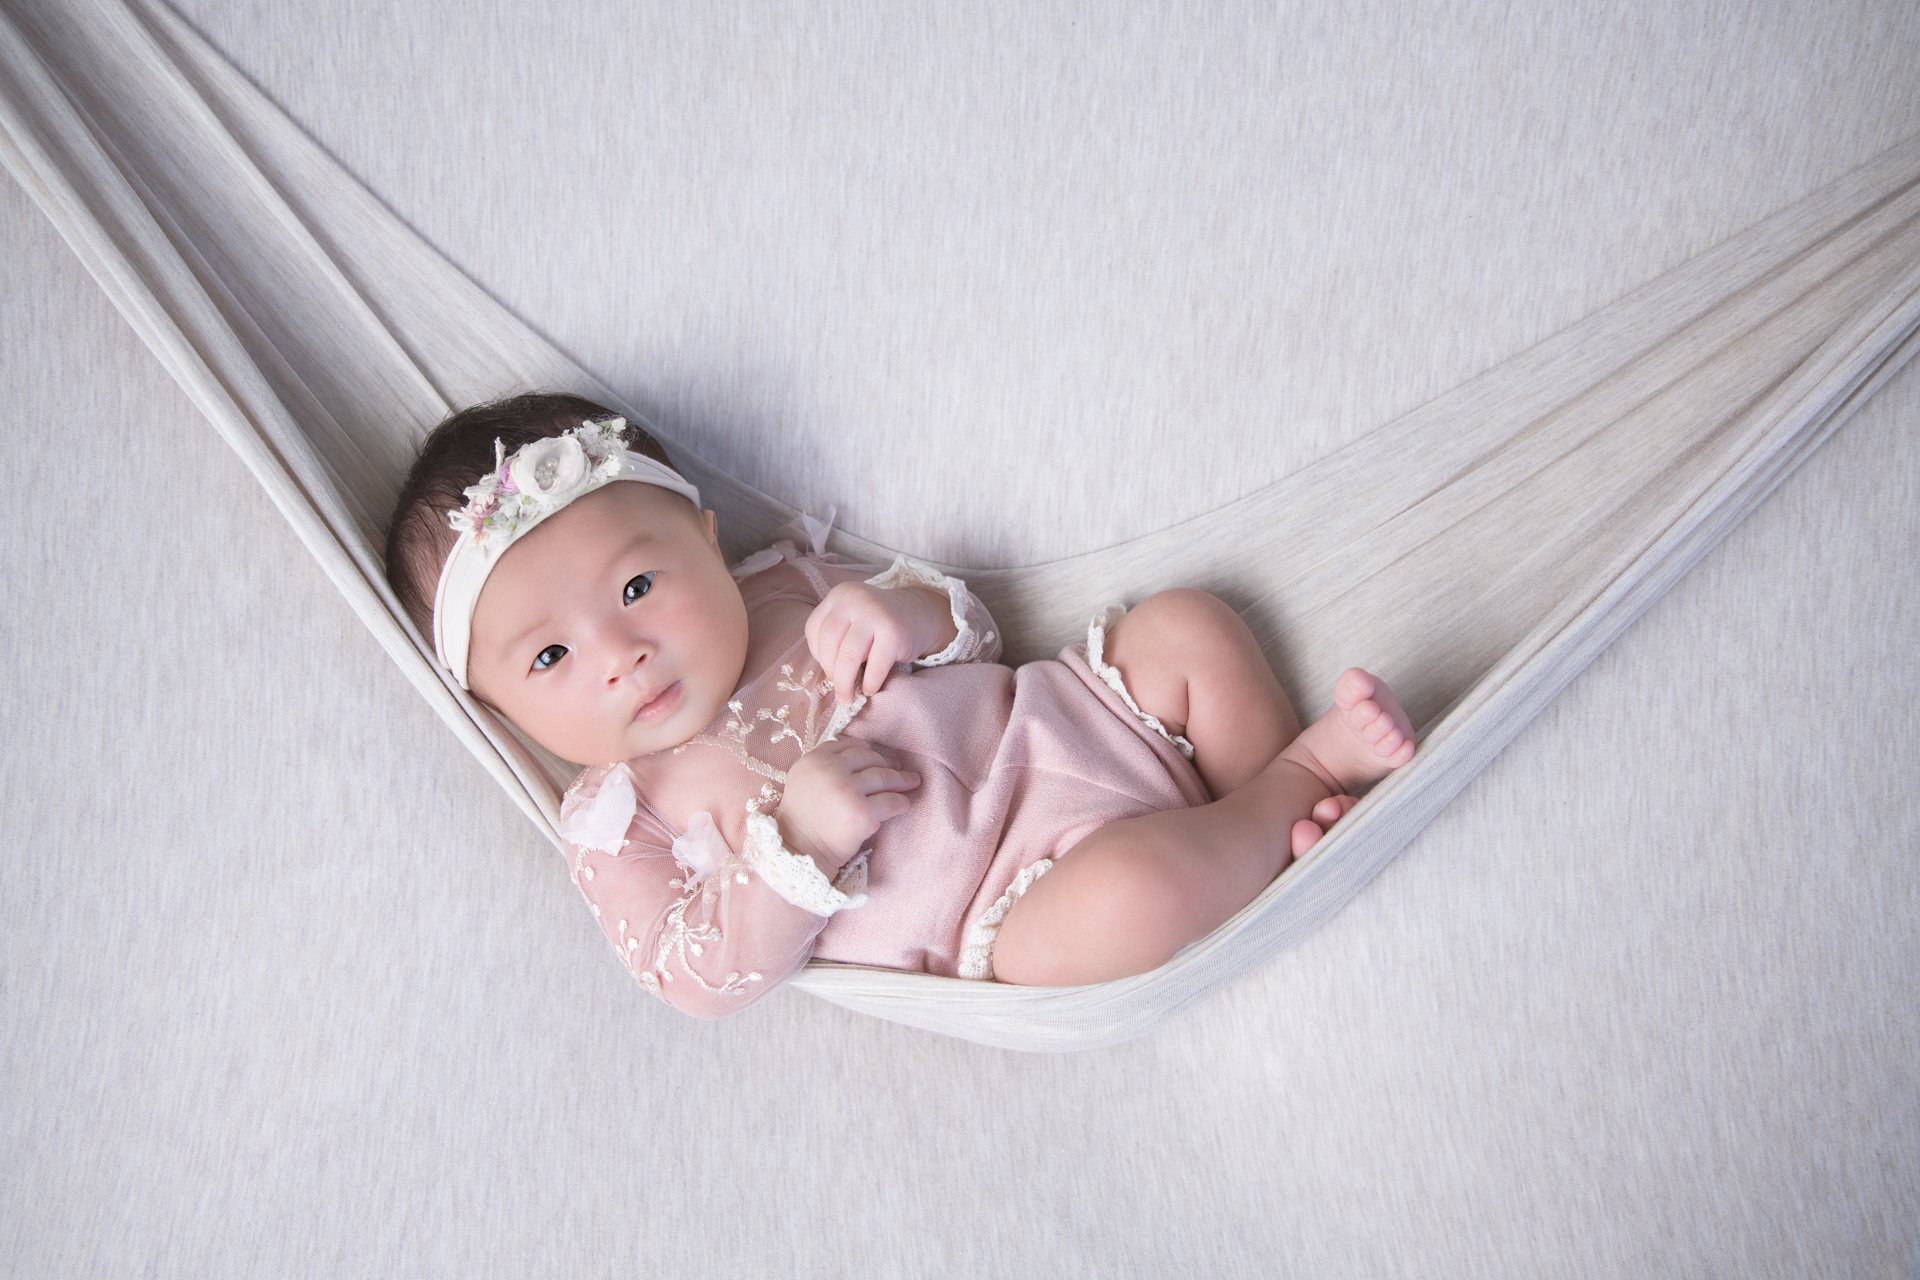 Newborn on light pink outfit looks at the camera. Light gray backdrop.